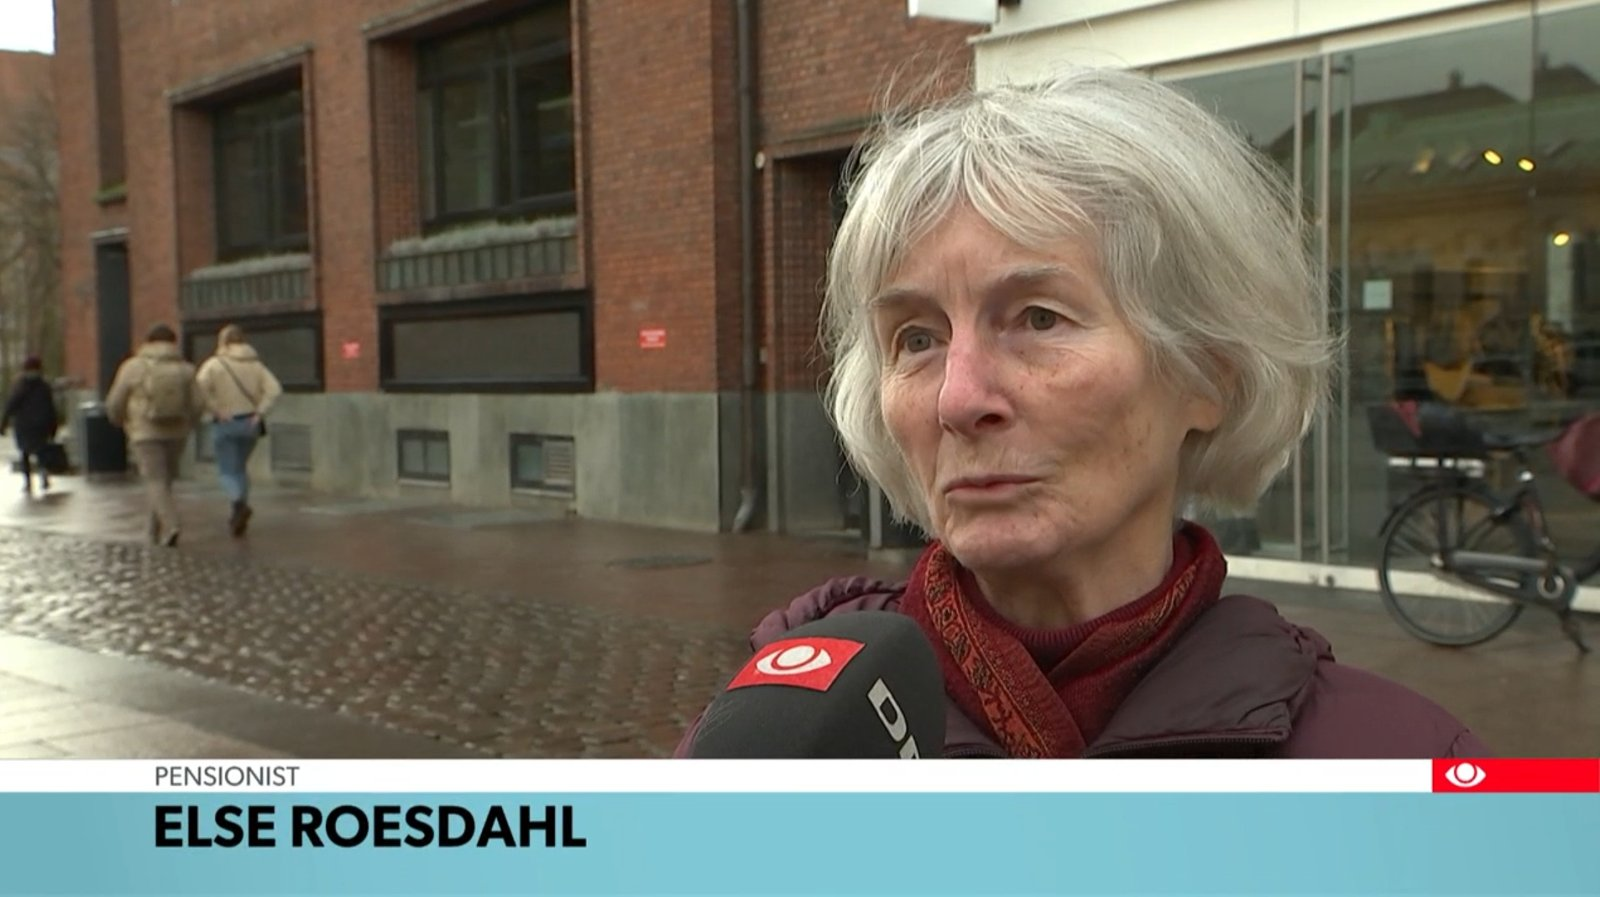 Else Roesdah TV Avisen 28 Jan 2